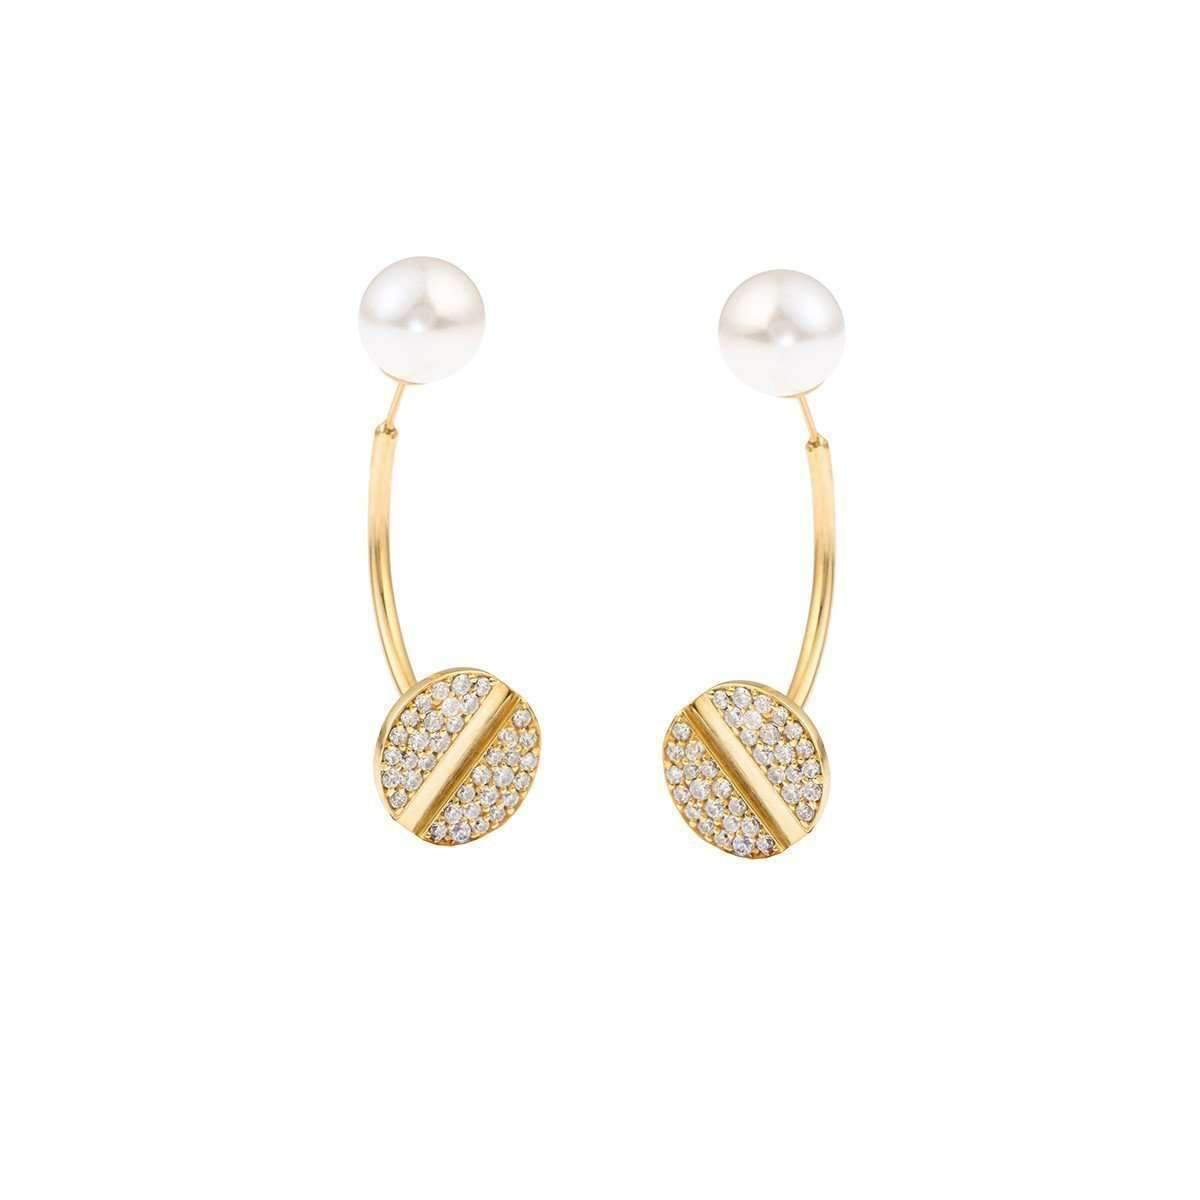 Joanna Laura Constantine Nail Ear-Jacket Earrings qD0CGo